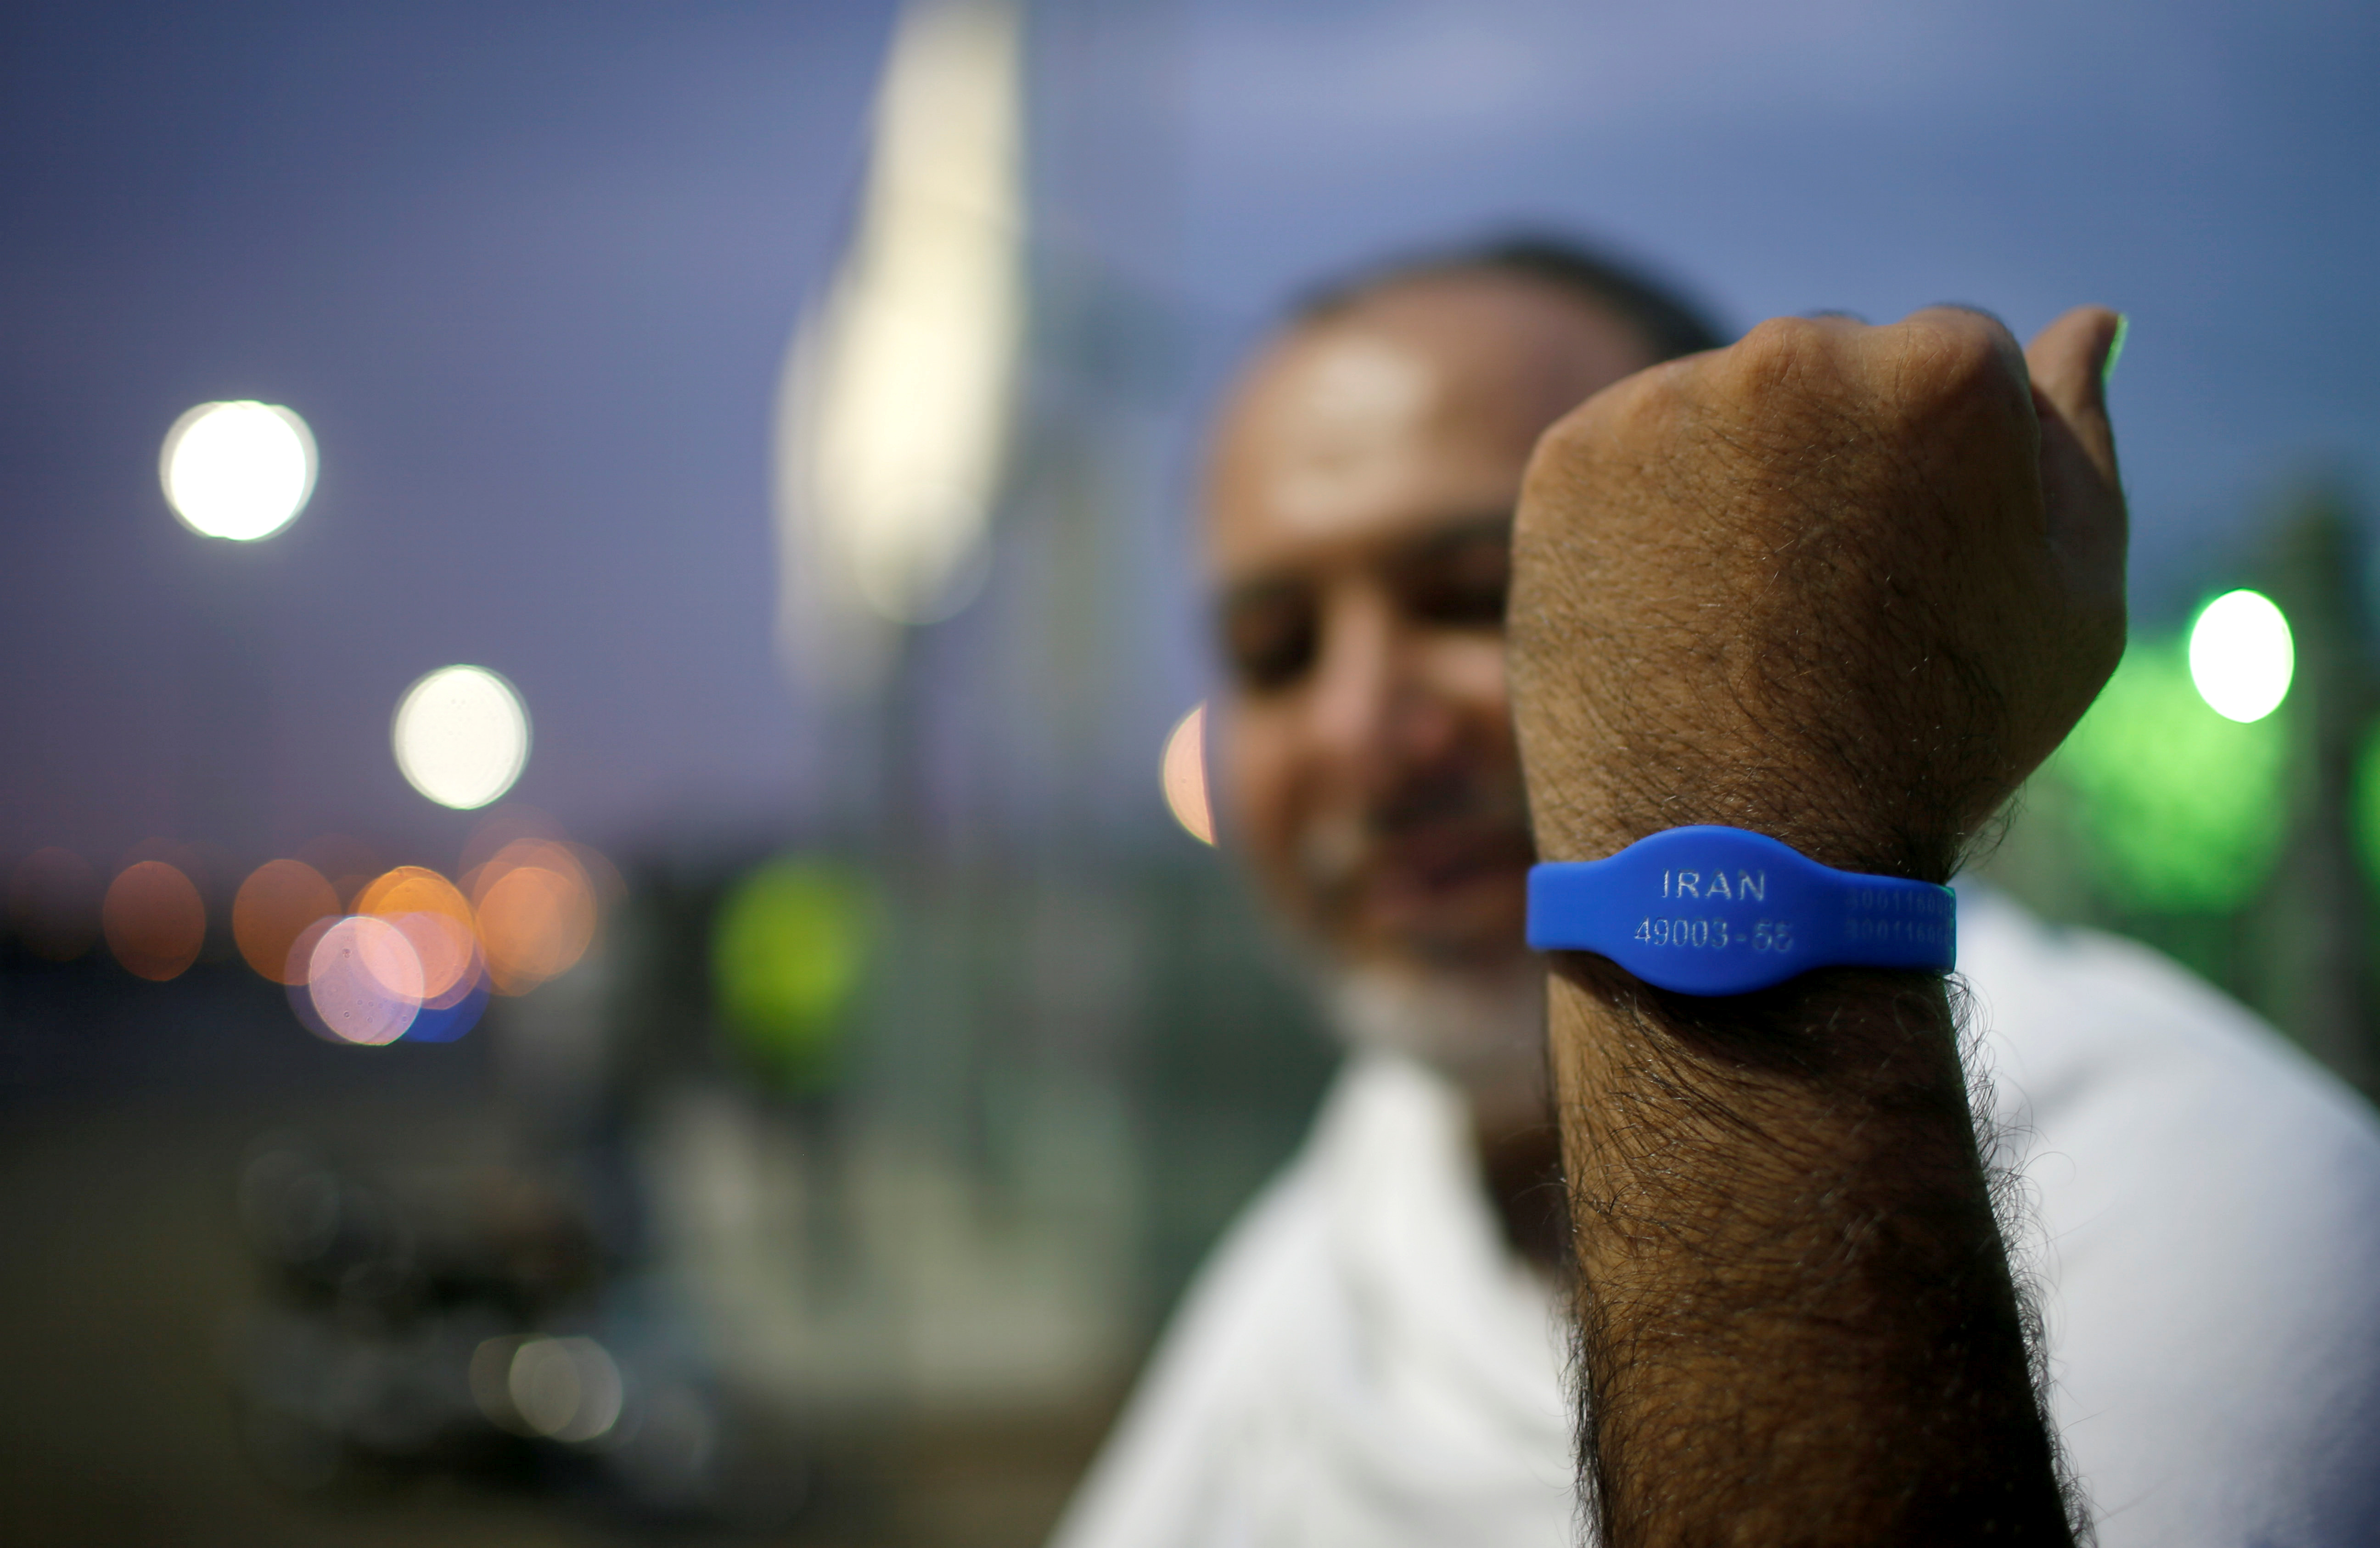 An Iranian pilgrim shows bracelet on his hand during the annual haj pilgrimage, in Arafat outside the holy city of Mecca, Saudi Arabia August 30,